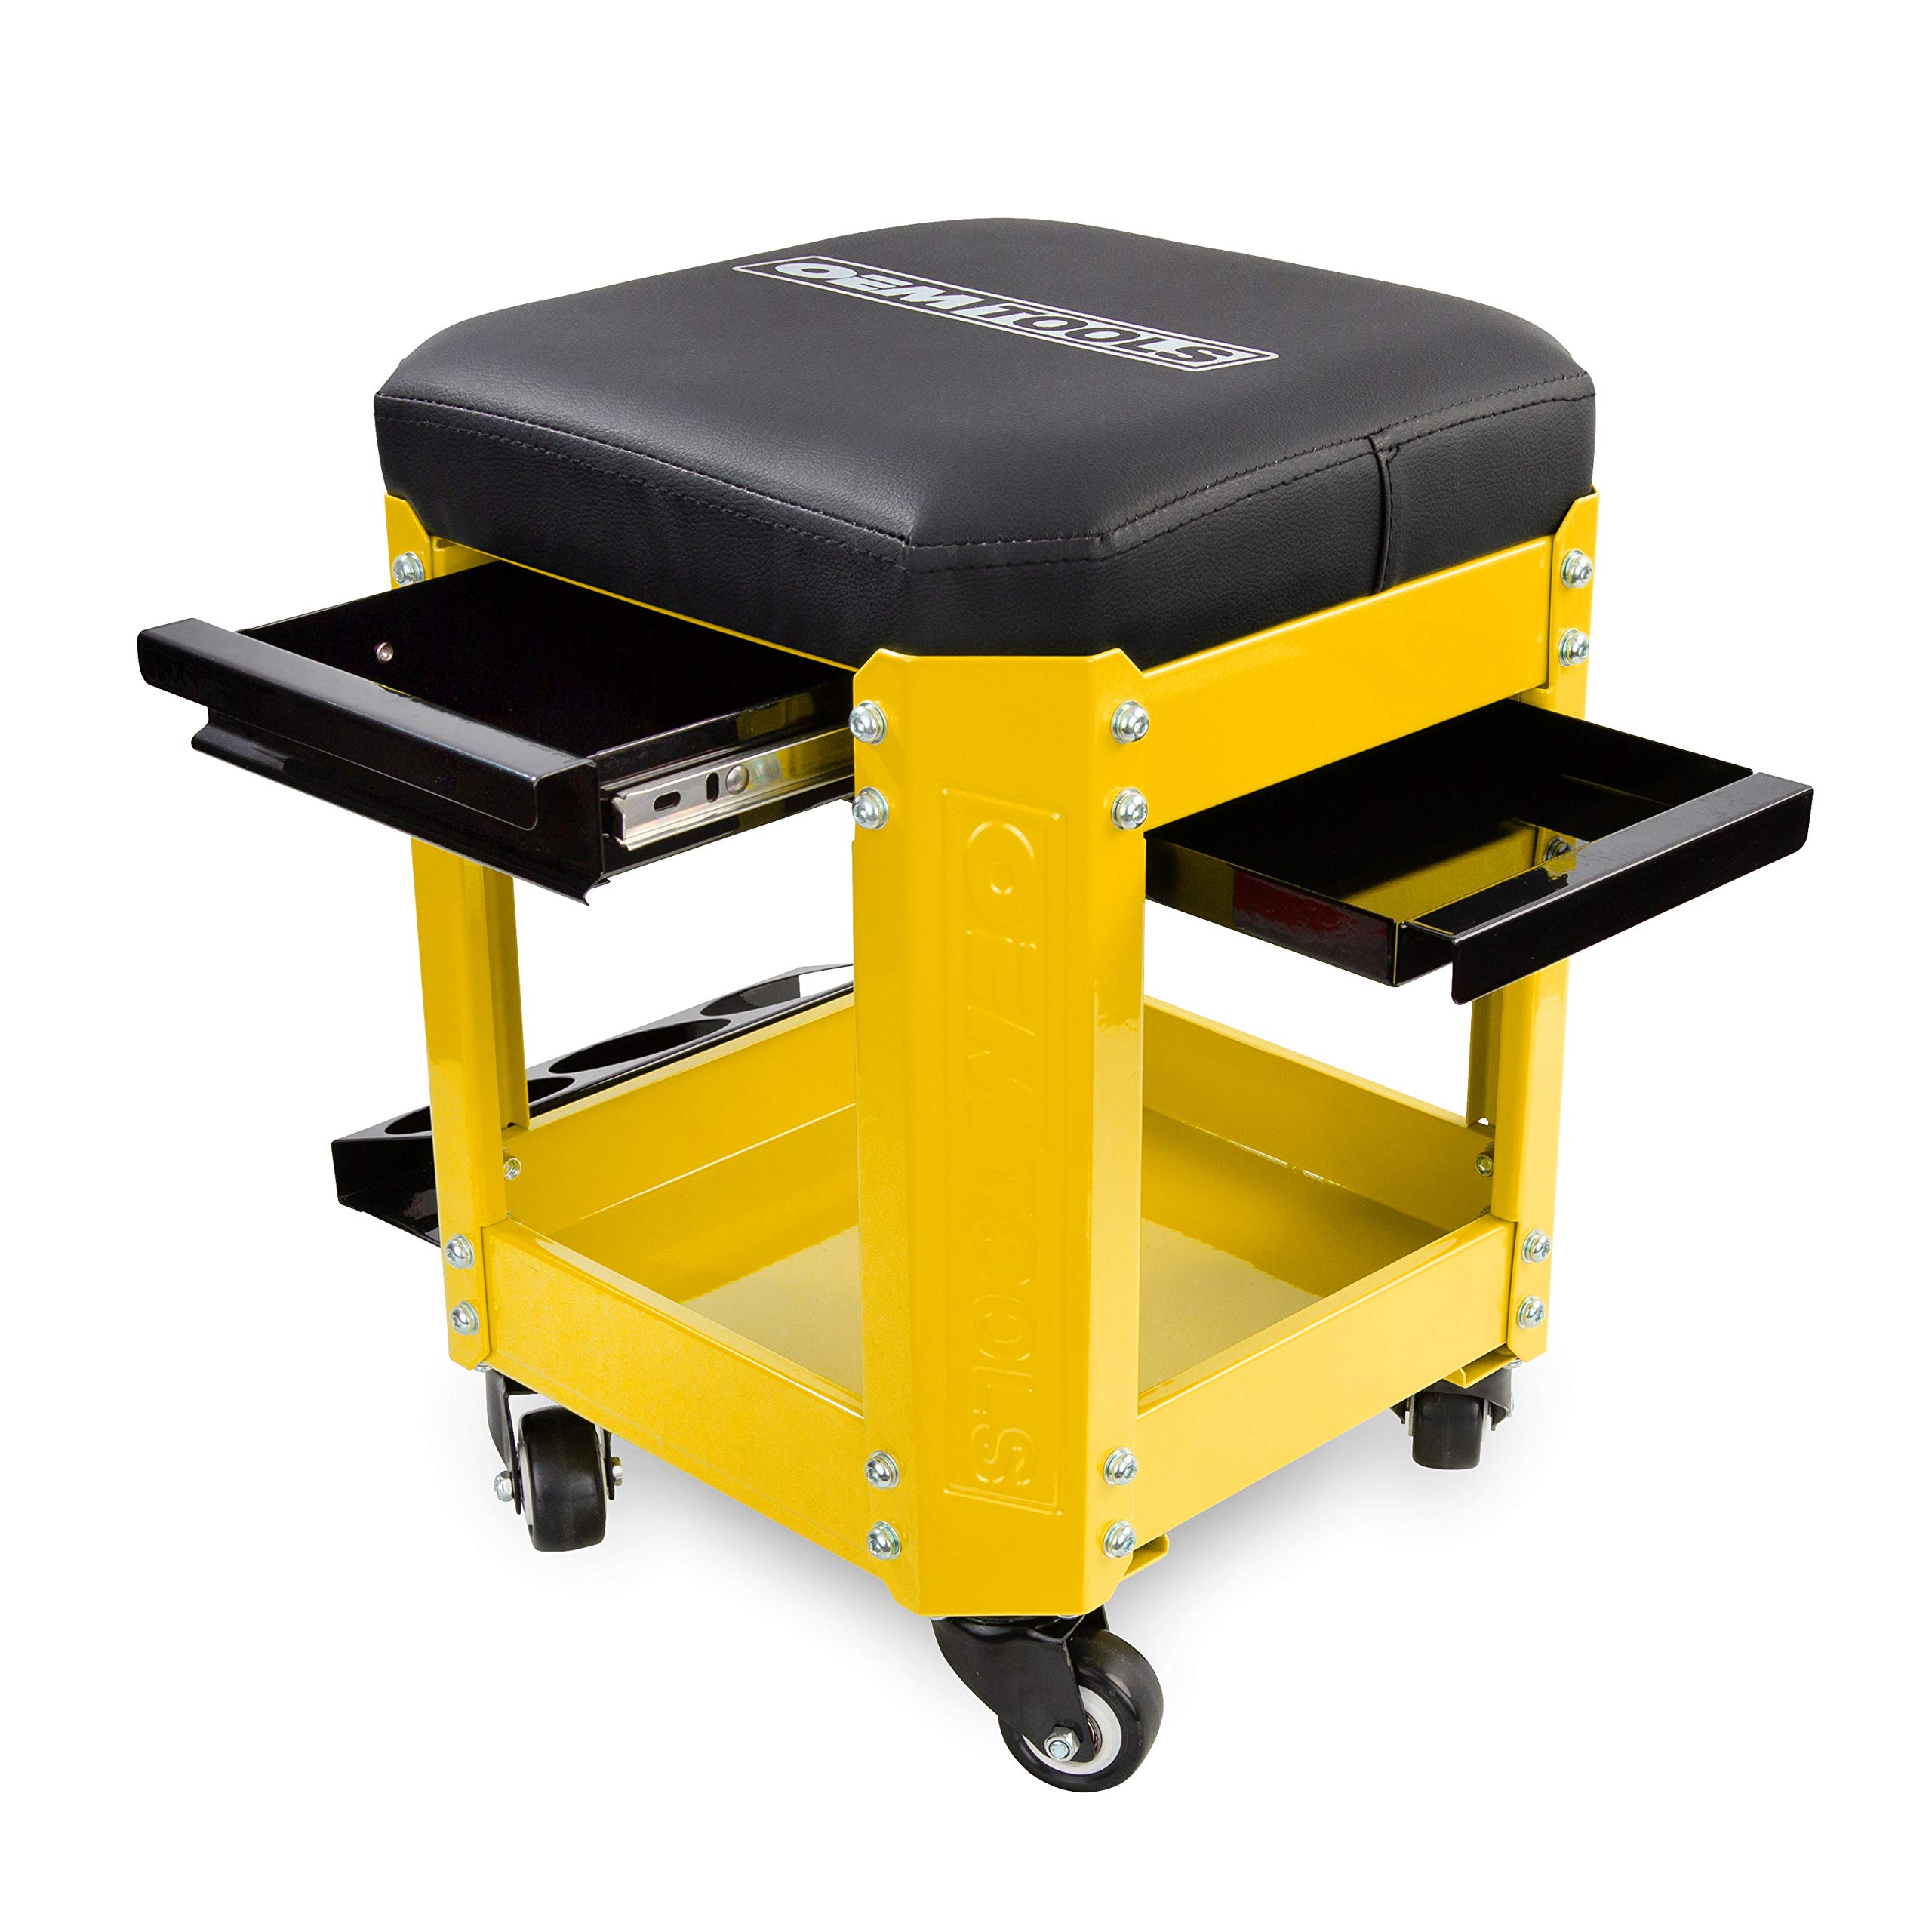 OEMTOOL 24999 Yellow Rolling Workshop Creeper Seat with 2 Tool Storage Drawers Under Seat Parts Storage Can Holders by OEMTOOLS (Image #1)